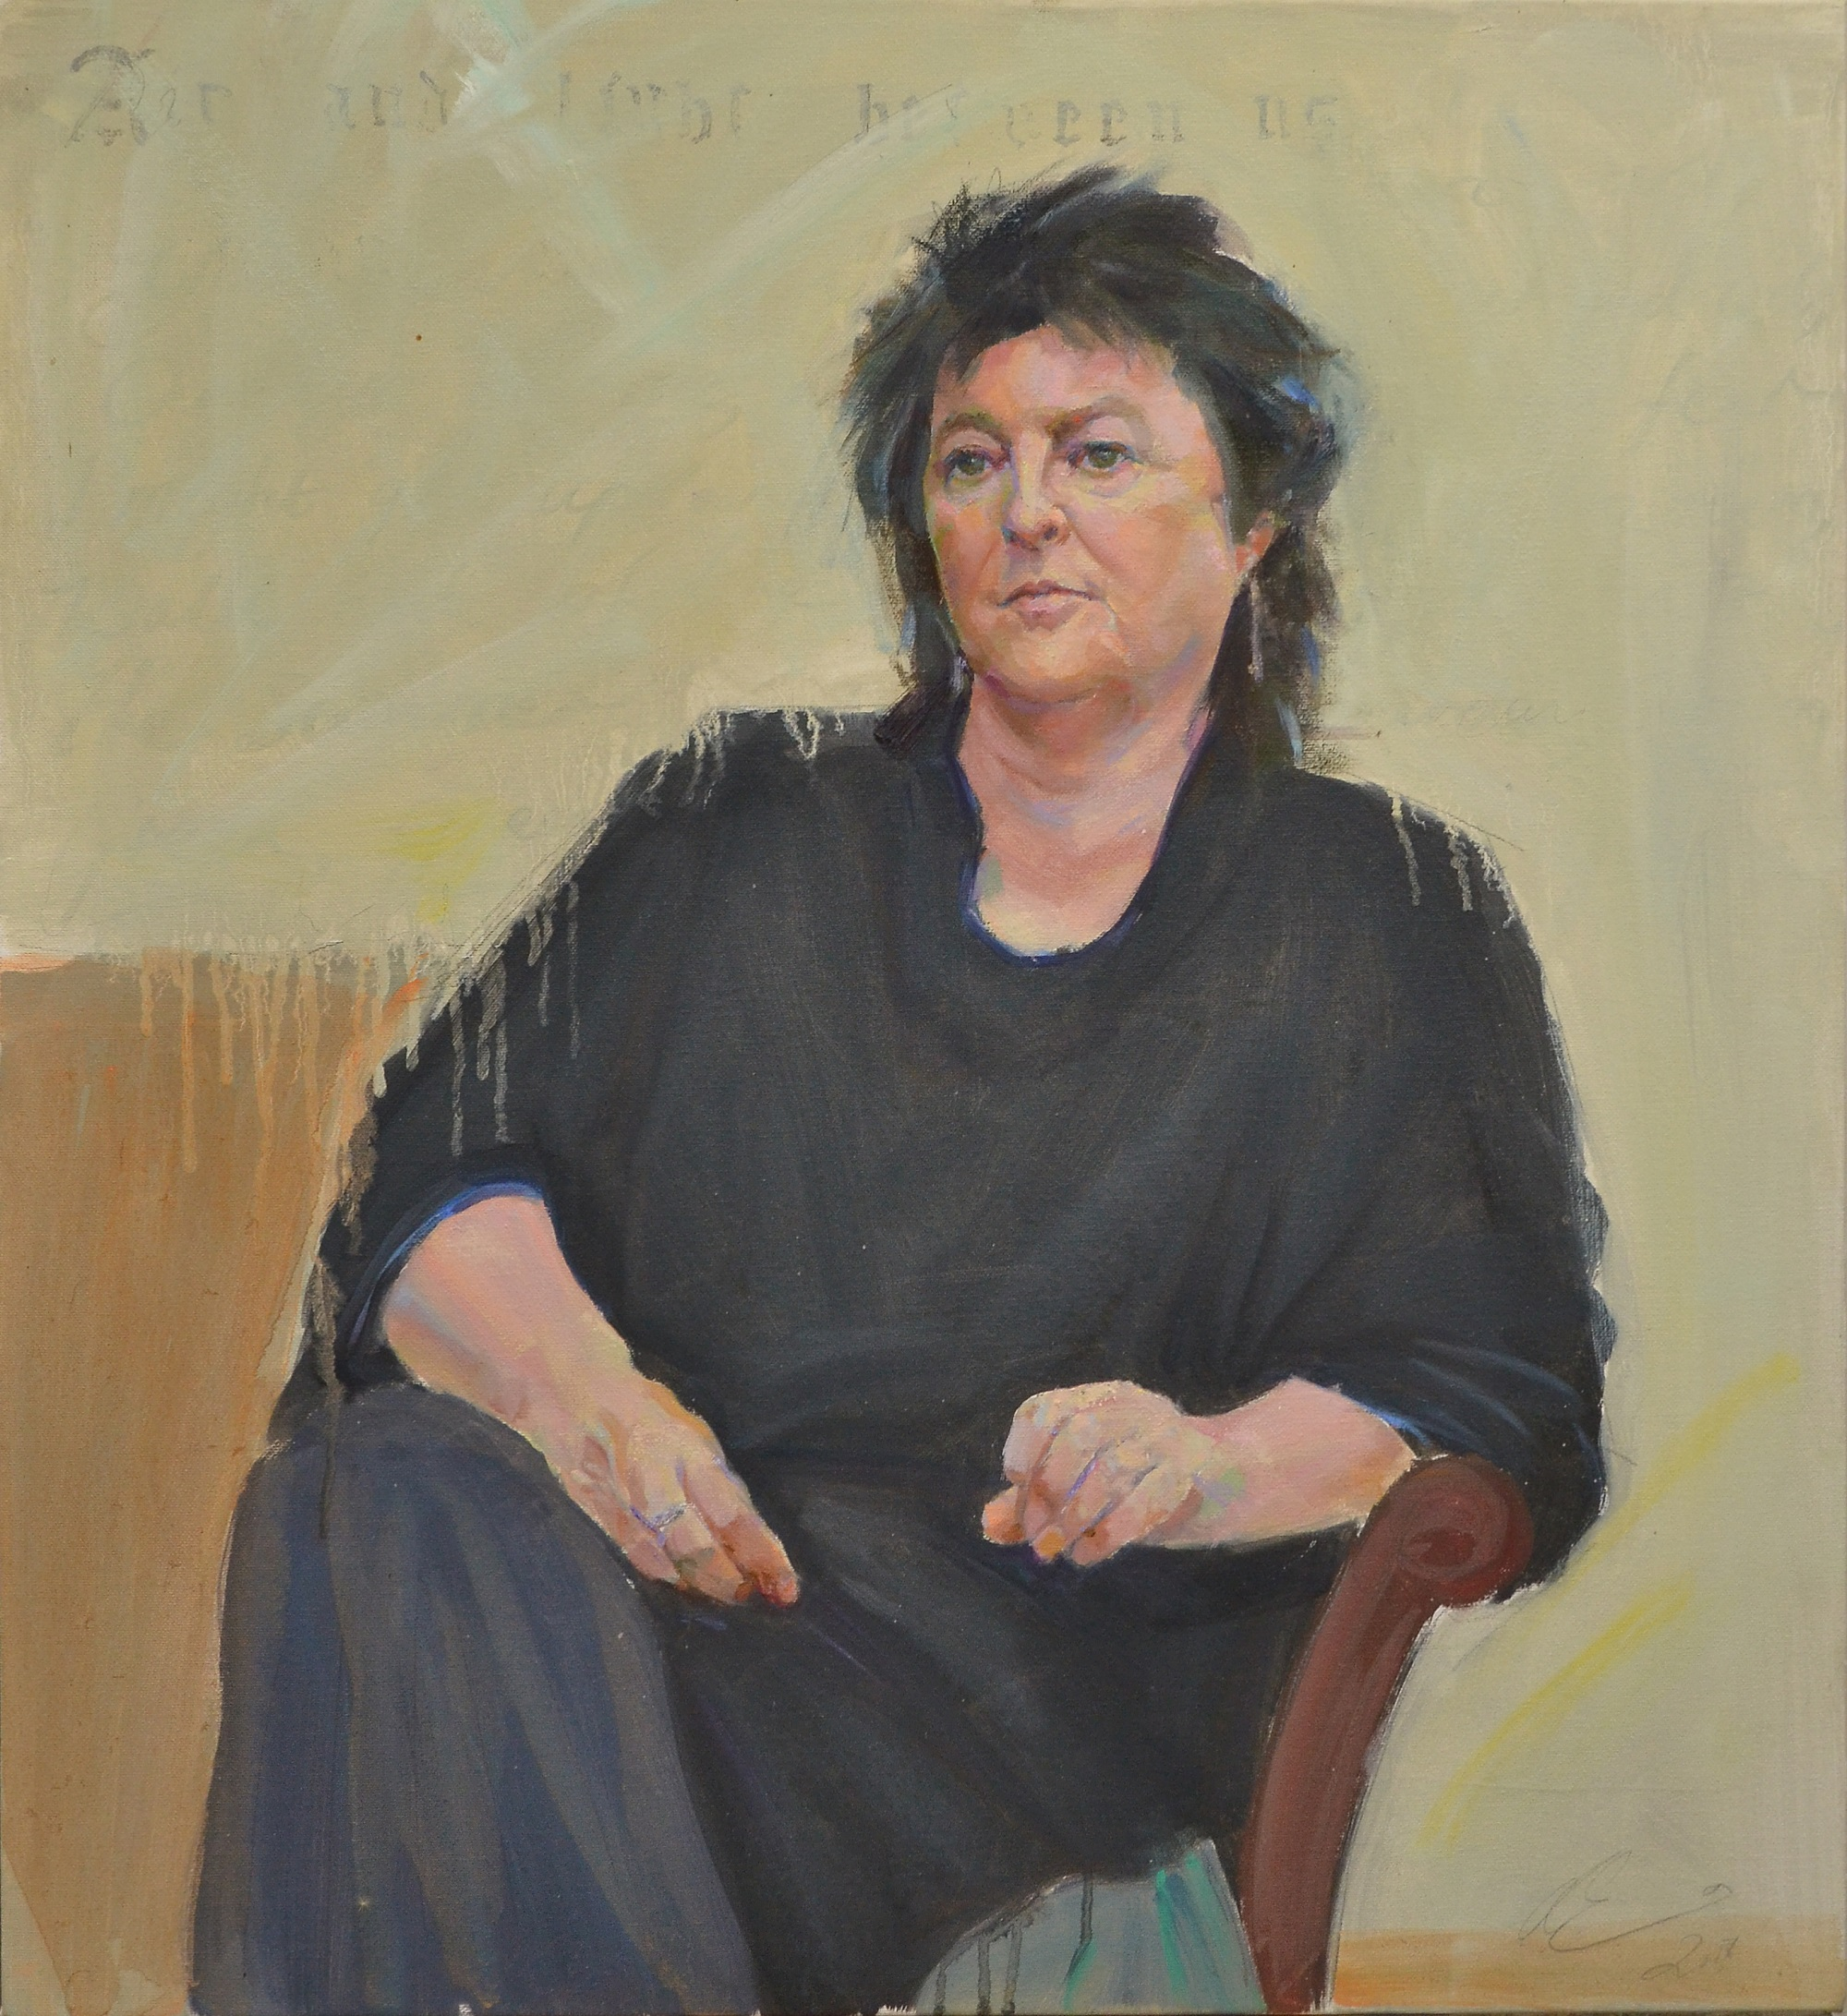 Air and Light (Carol Ann Duffy) Clae Eastgate Oil on canvas, 22 x 24 in. Acquired by the Scottish National Portrait Gallery for the permanent collection 2019.